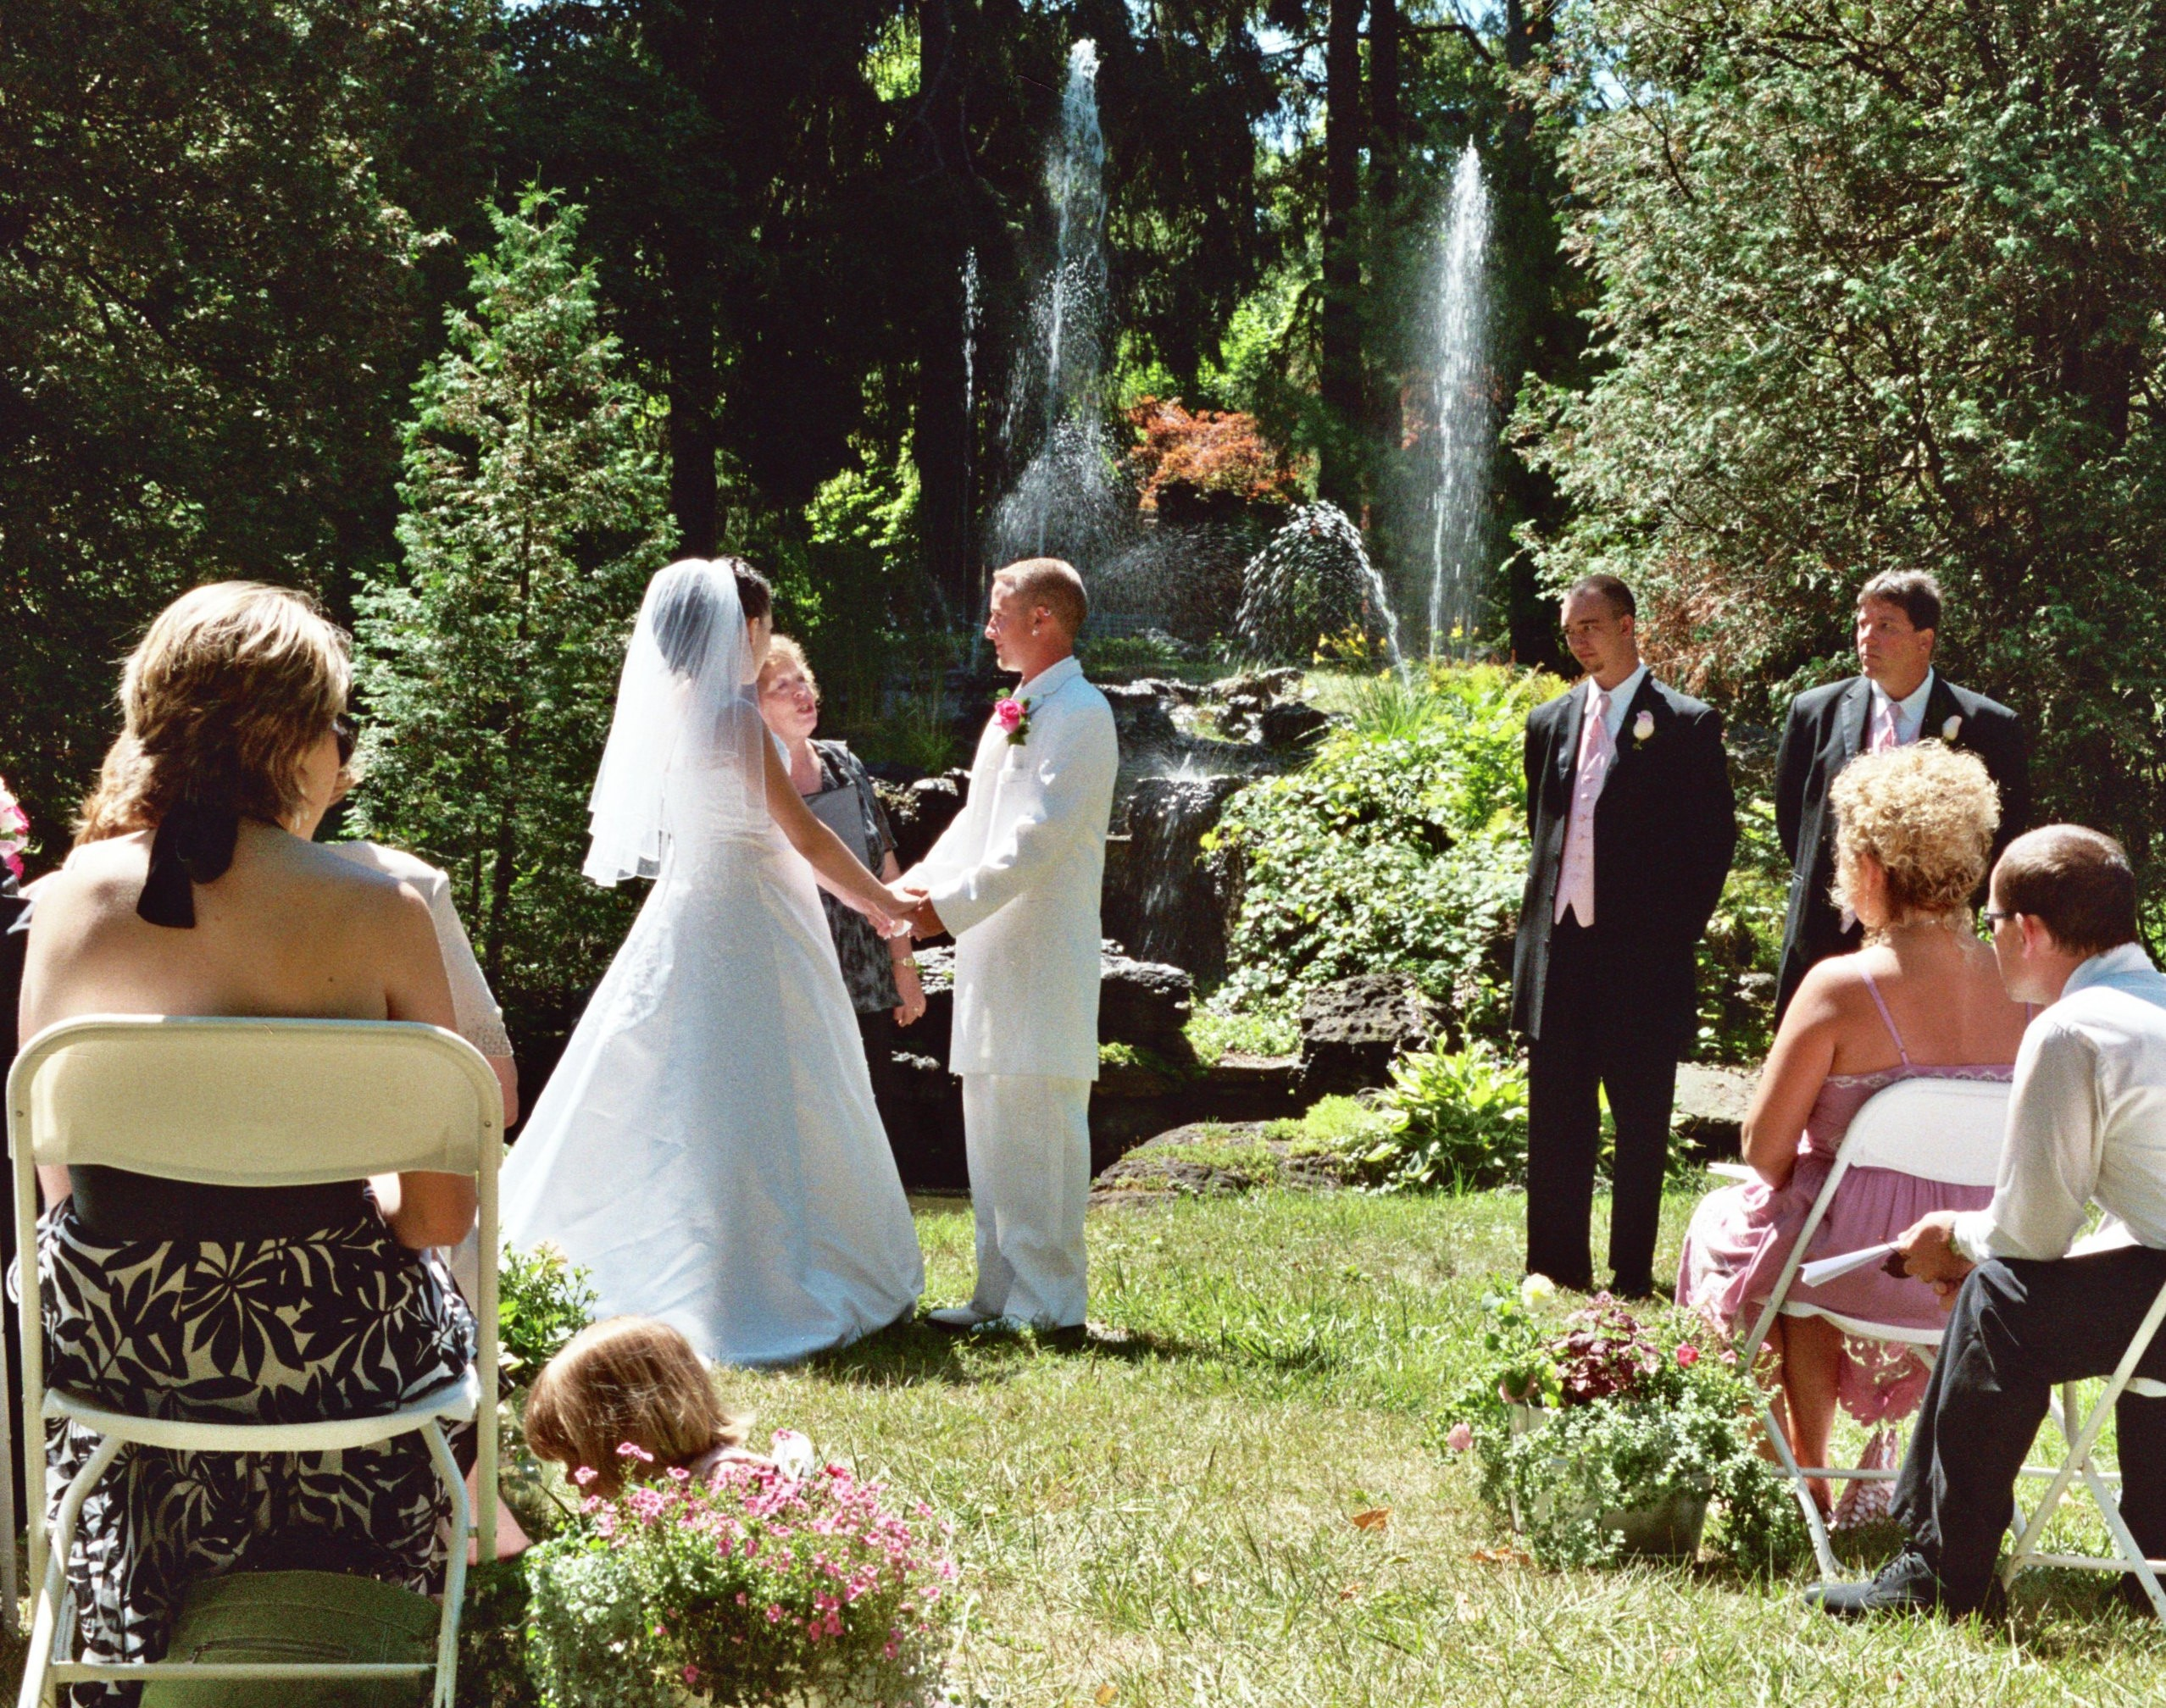 rock-garden-wedding-ceremony_6685029973_o